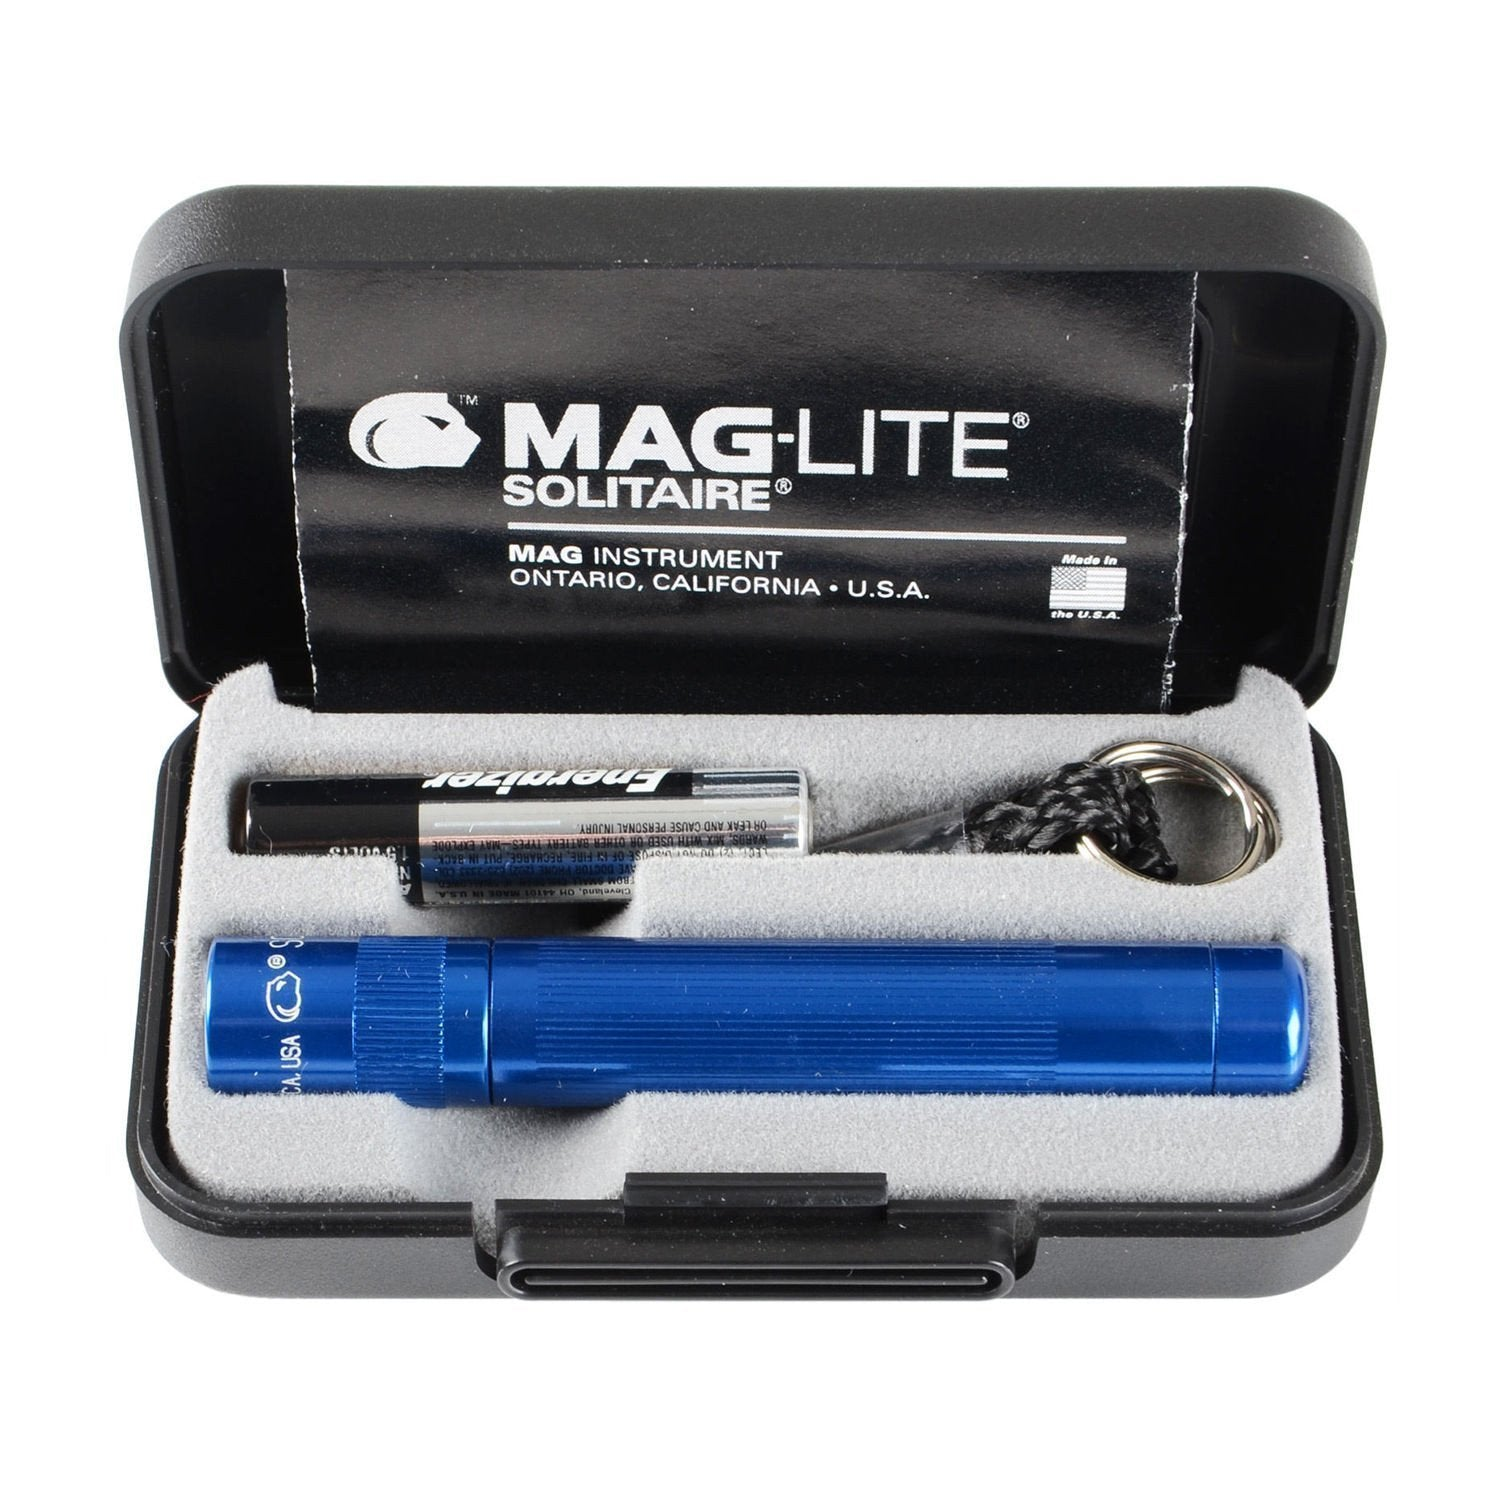 Maglite Solitaire AAA Keychain Light in Presentation Box - Blue-Flashlights and Lighting-Tactical Gear Australia